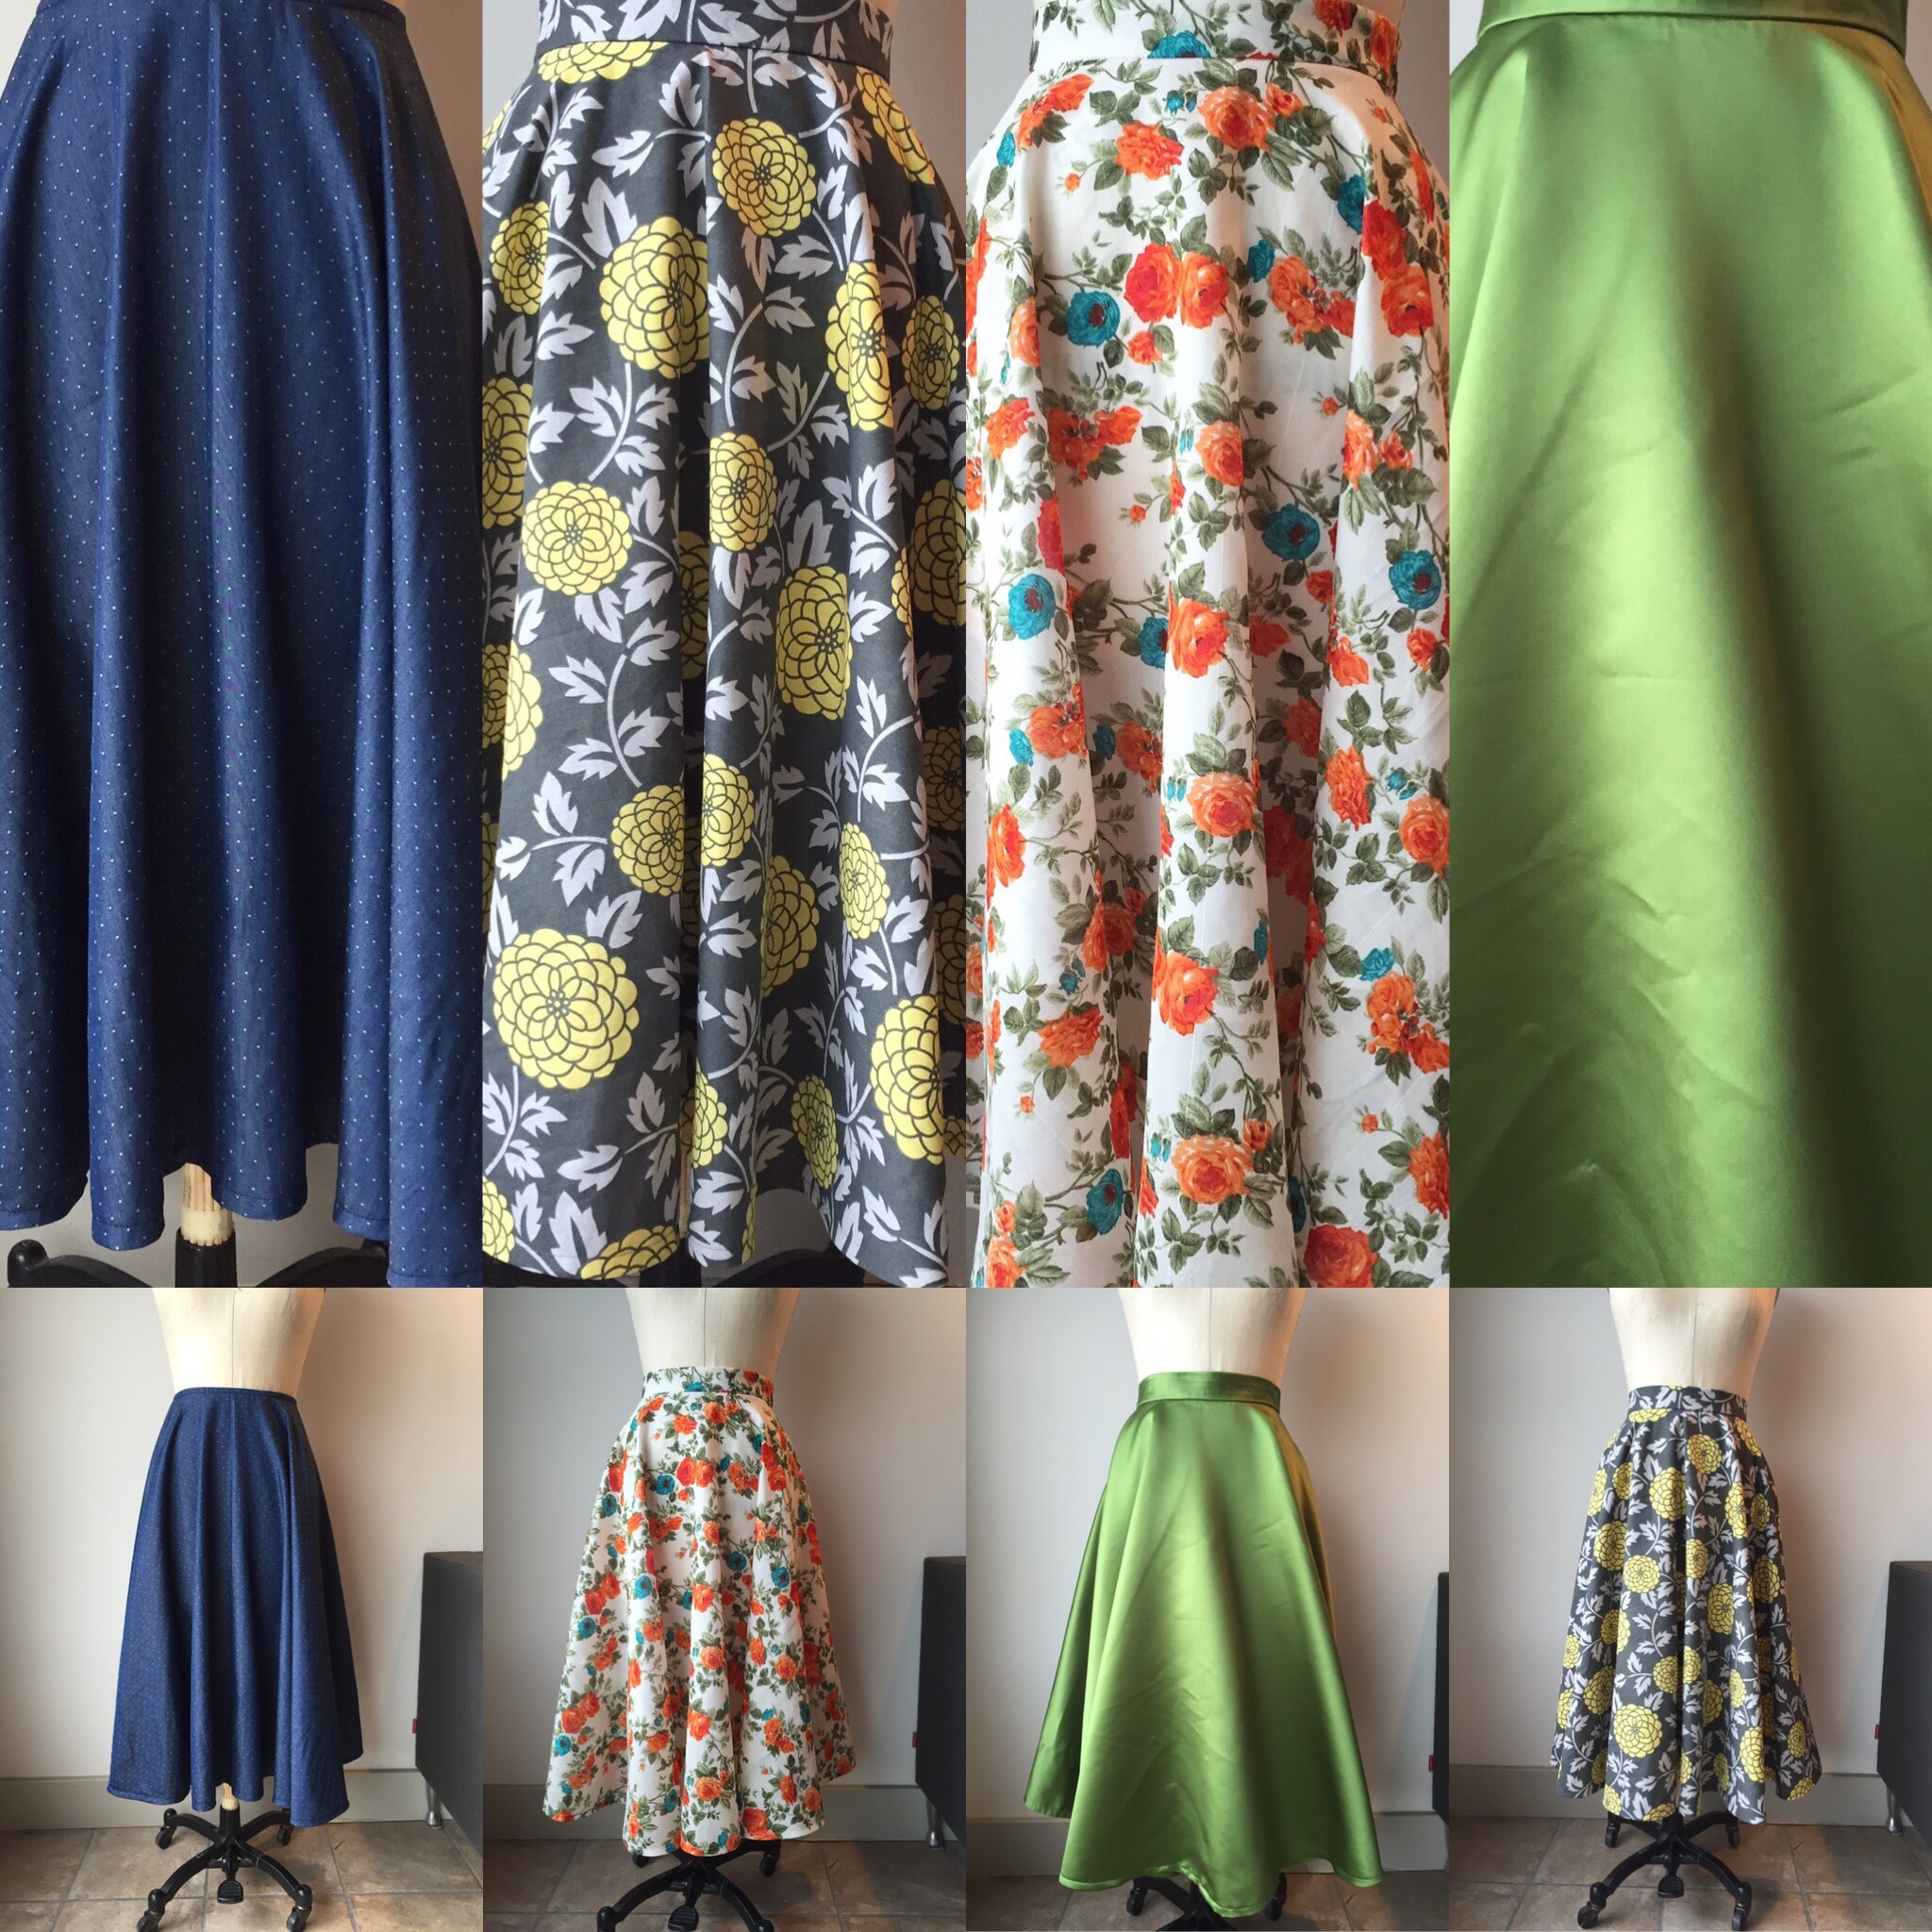 A small sampling of the skirts commissioned by my client.